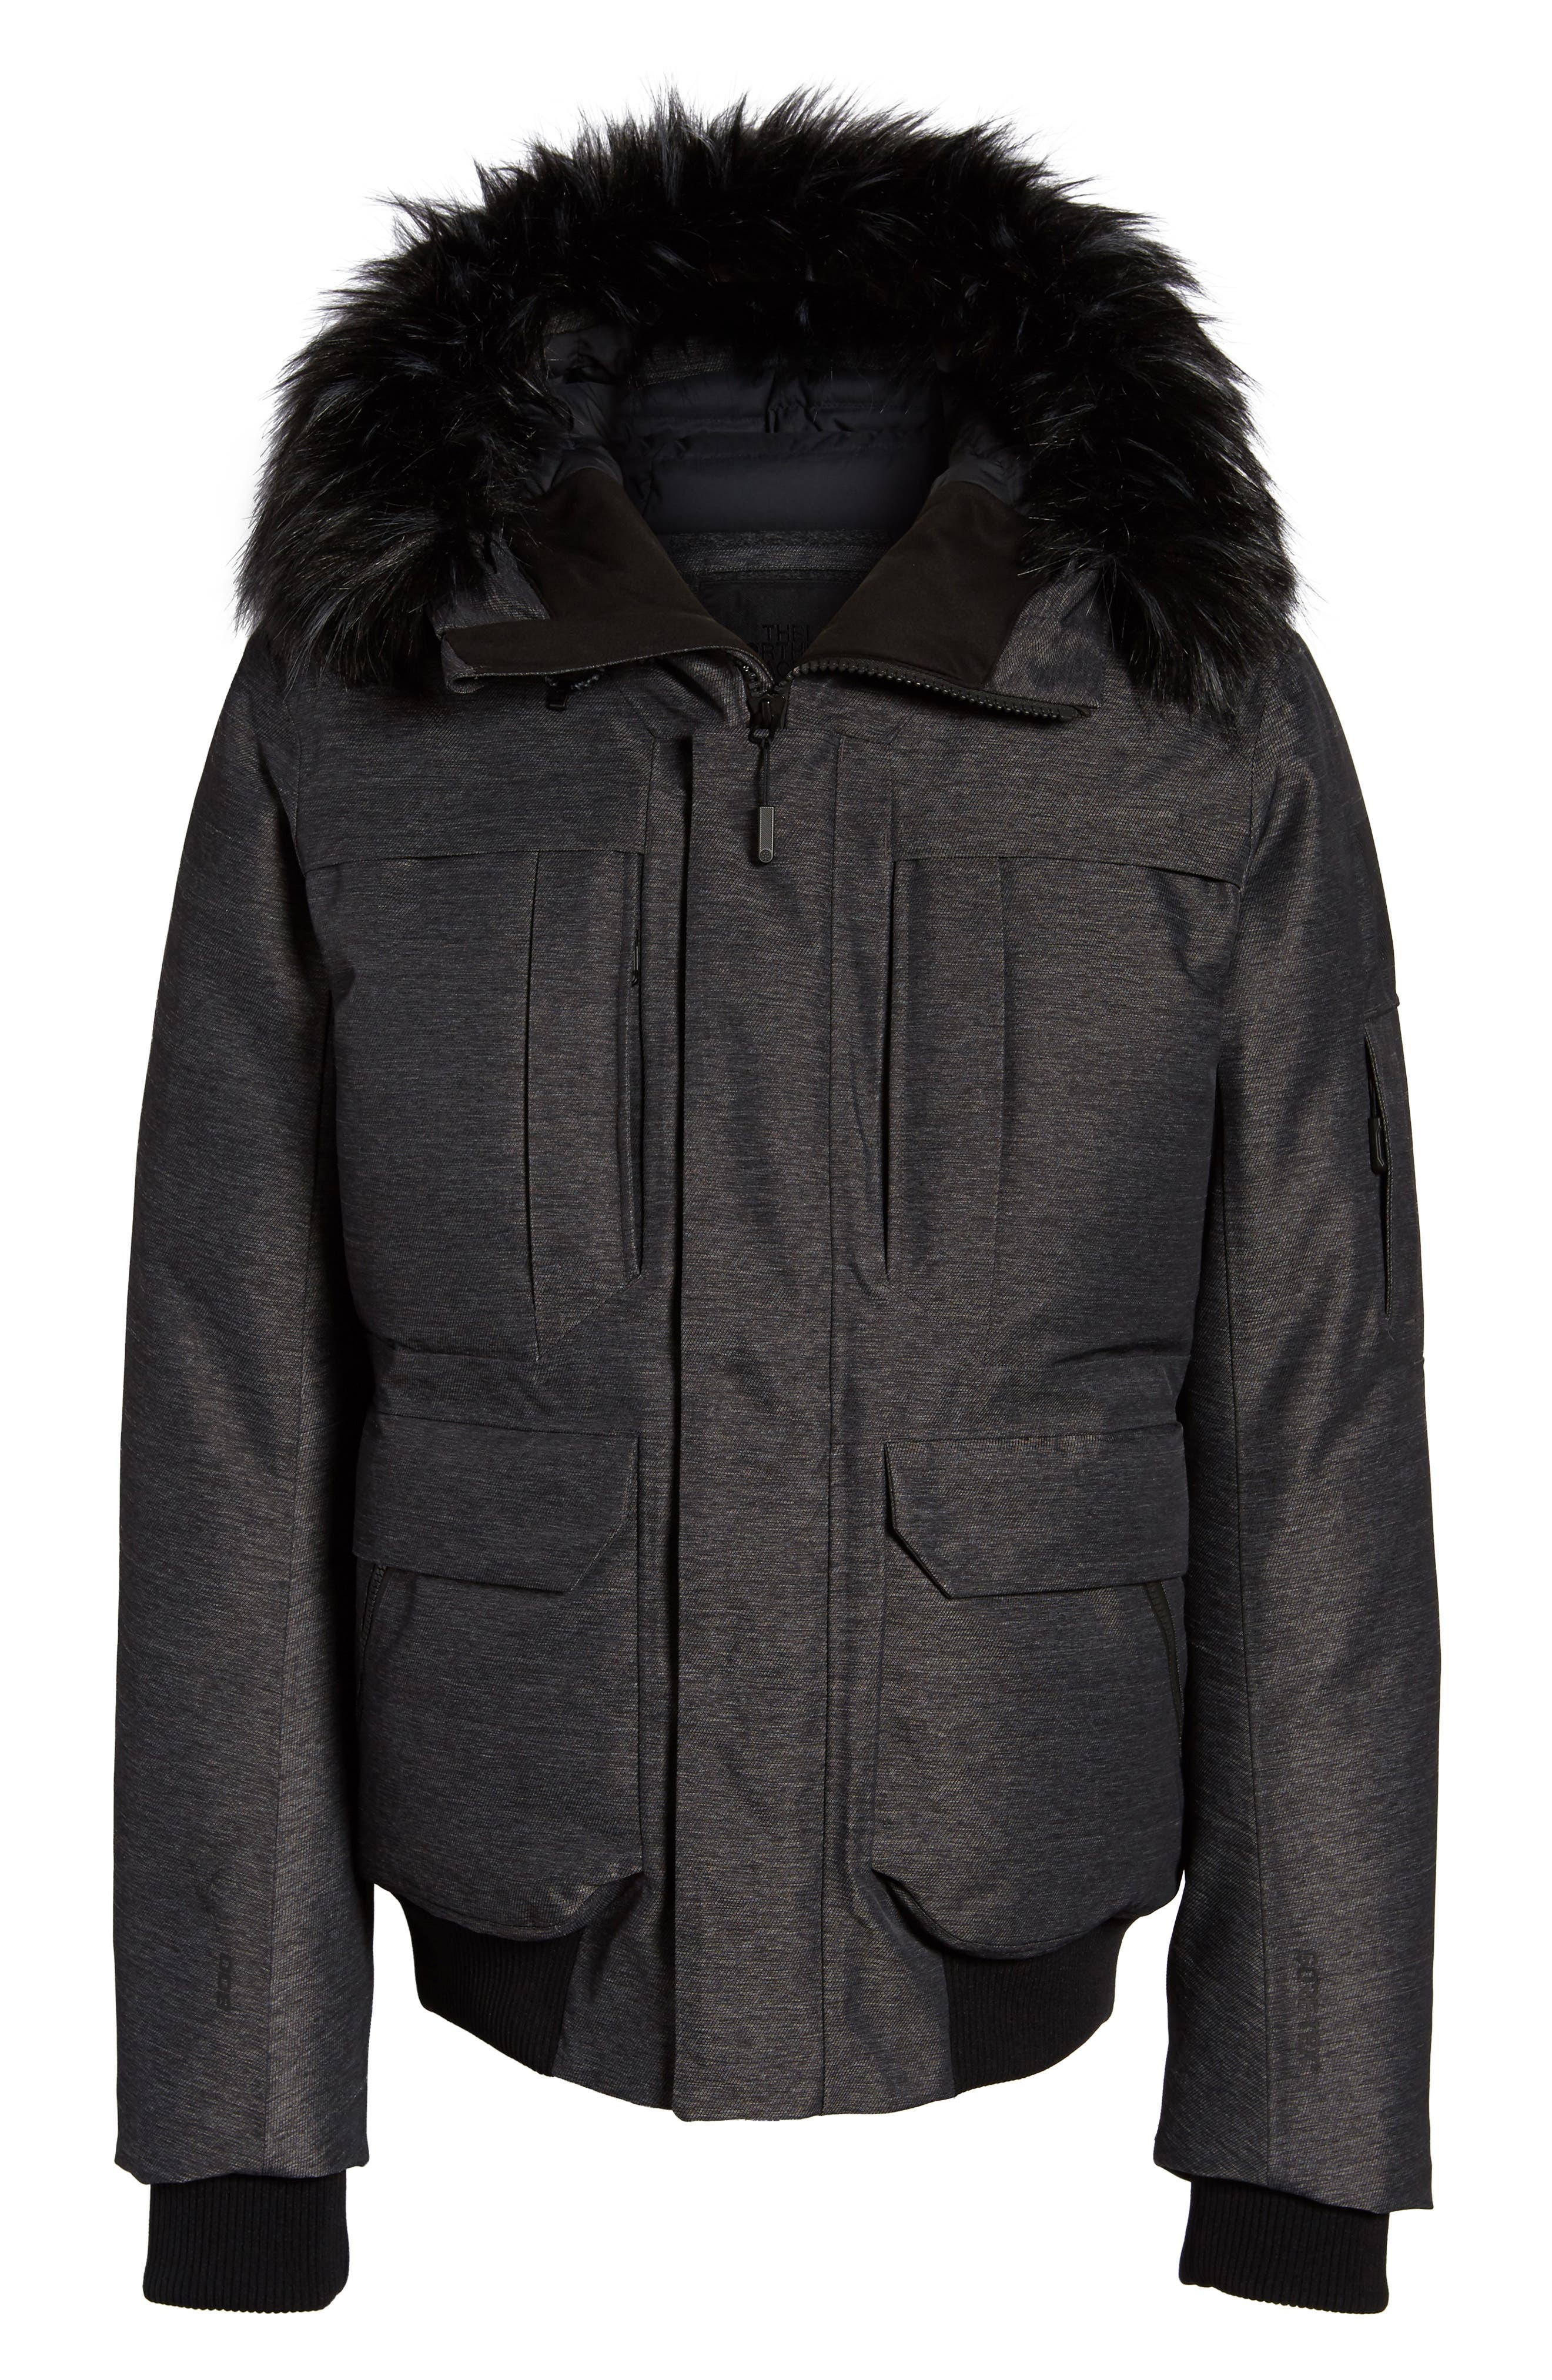 Cryos Expedition Gore-Tex<sup>®</sup> Bomber Jacket,                             Alternate thumbnail 14, color,